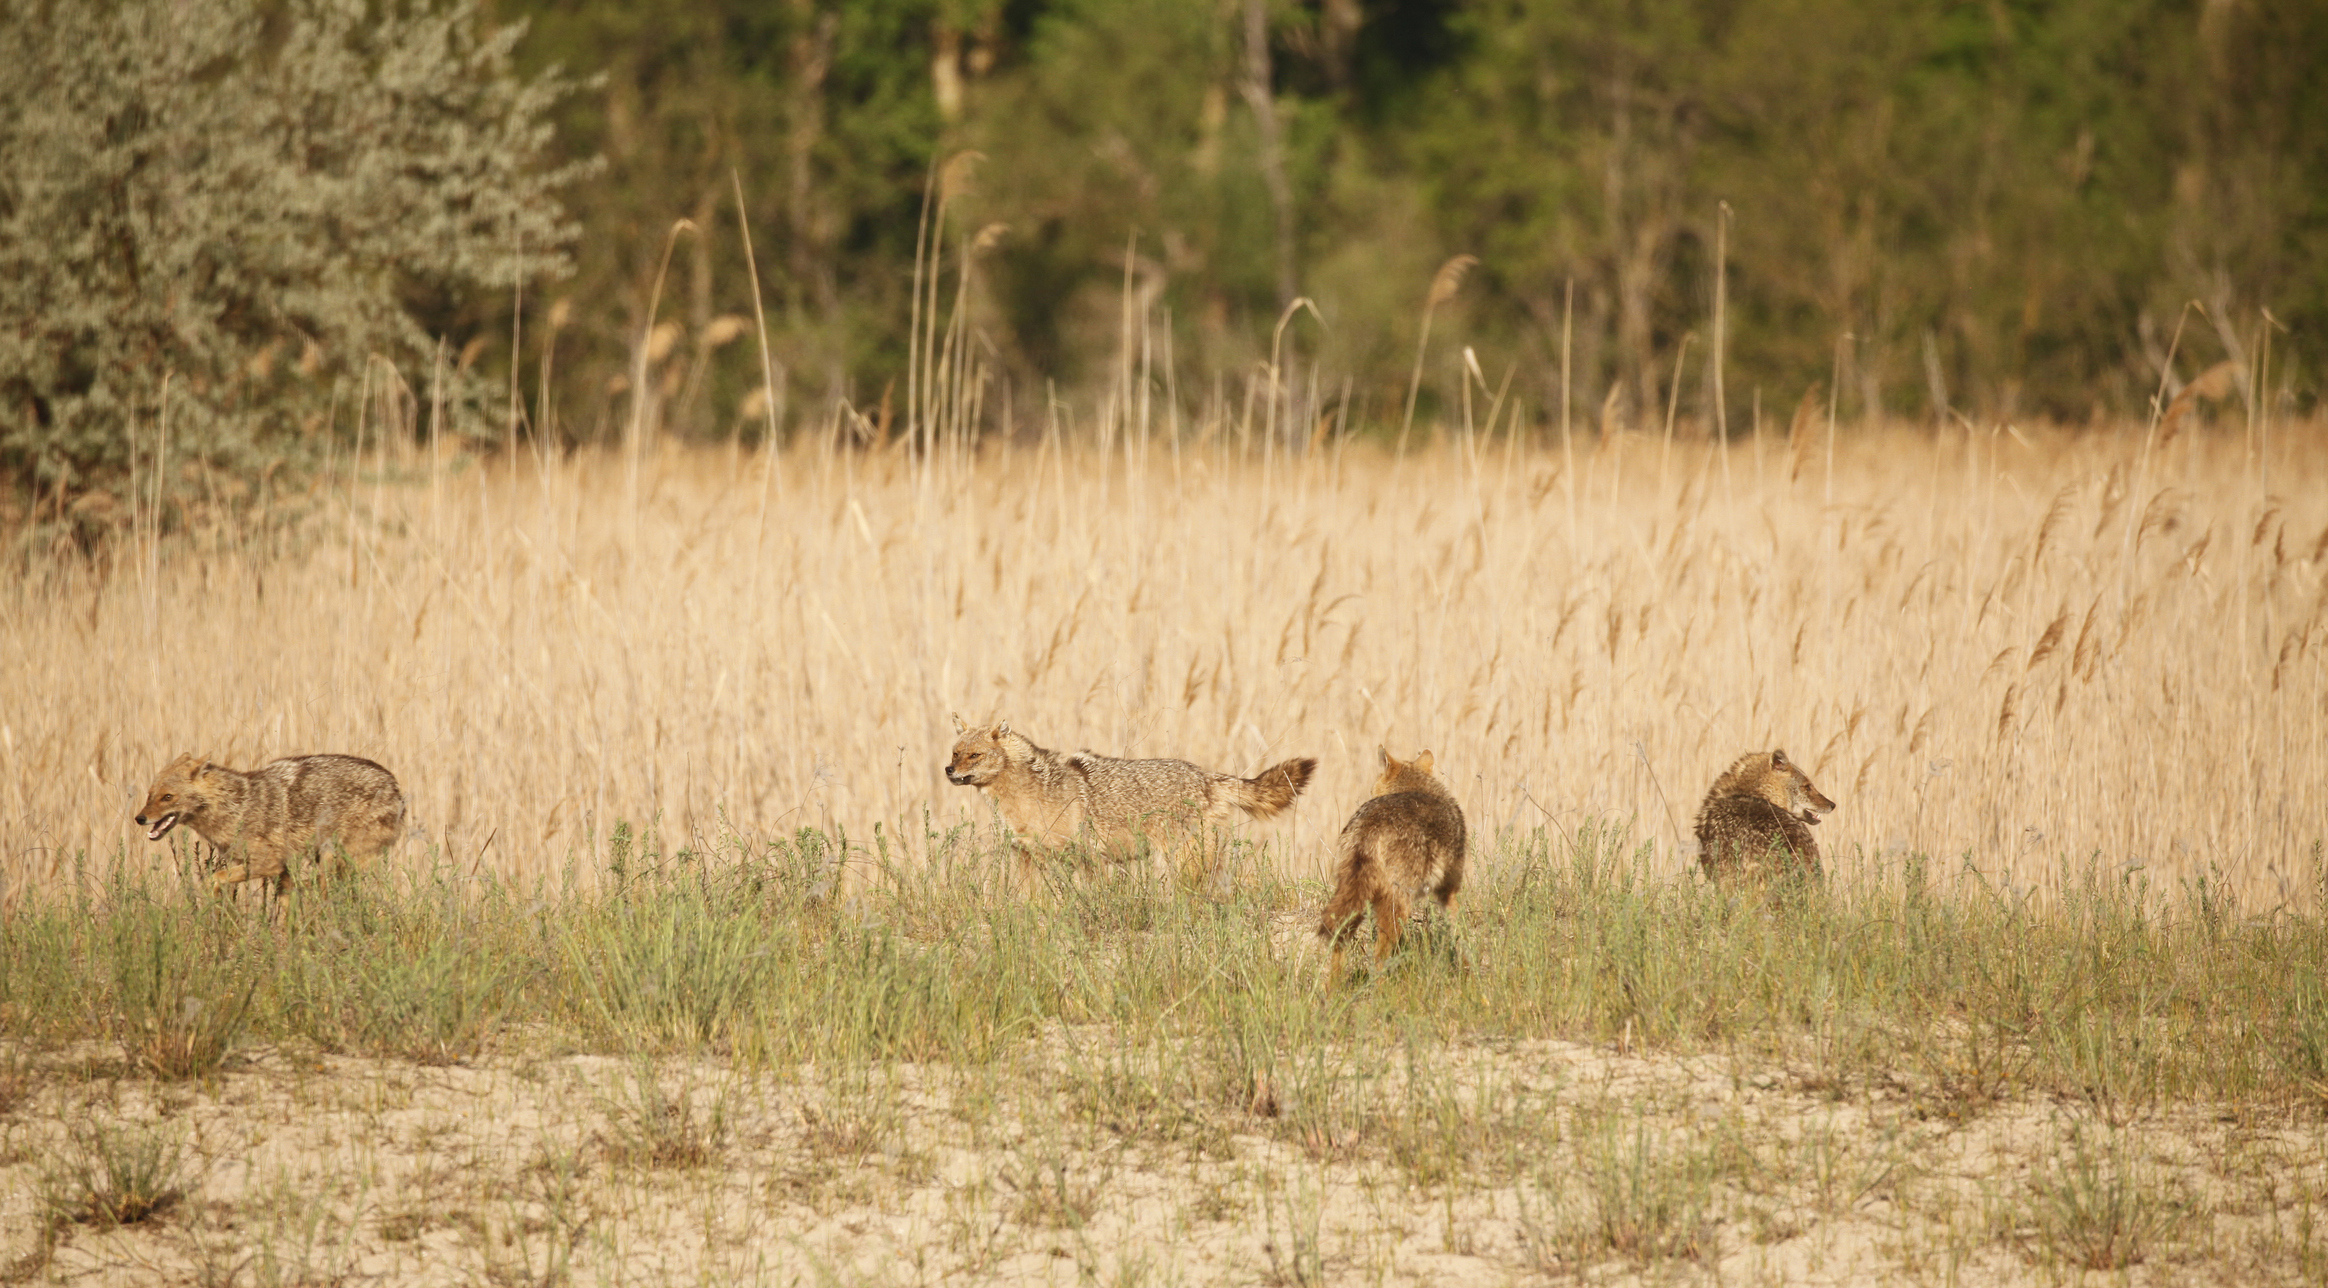 Mother wild Golden Jackal, Canis aureus, with three well-grown cubs in early morning, Danube Delta Biosphere Reserve, eastern Romania